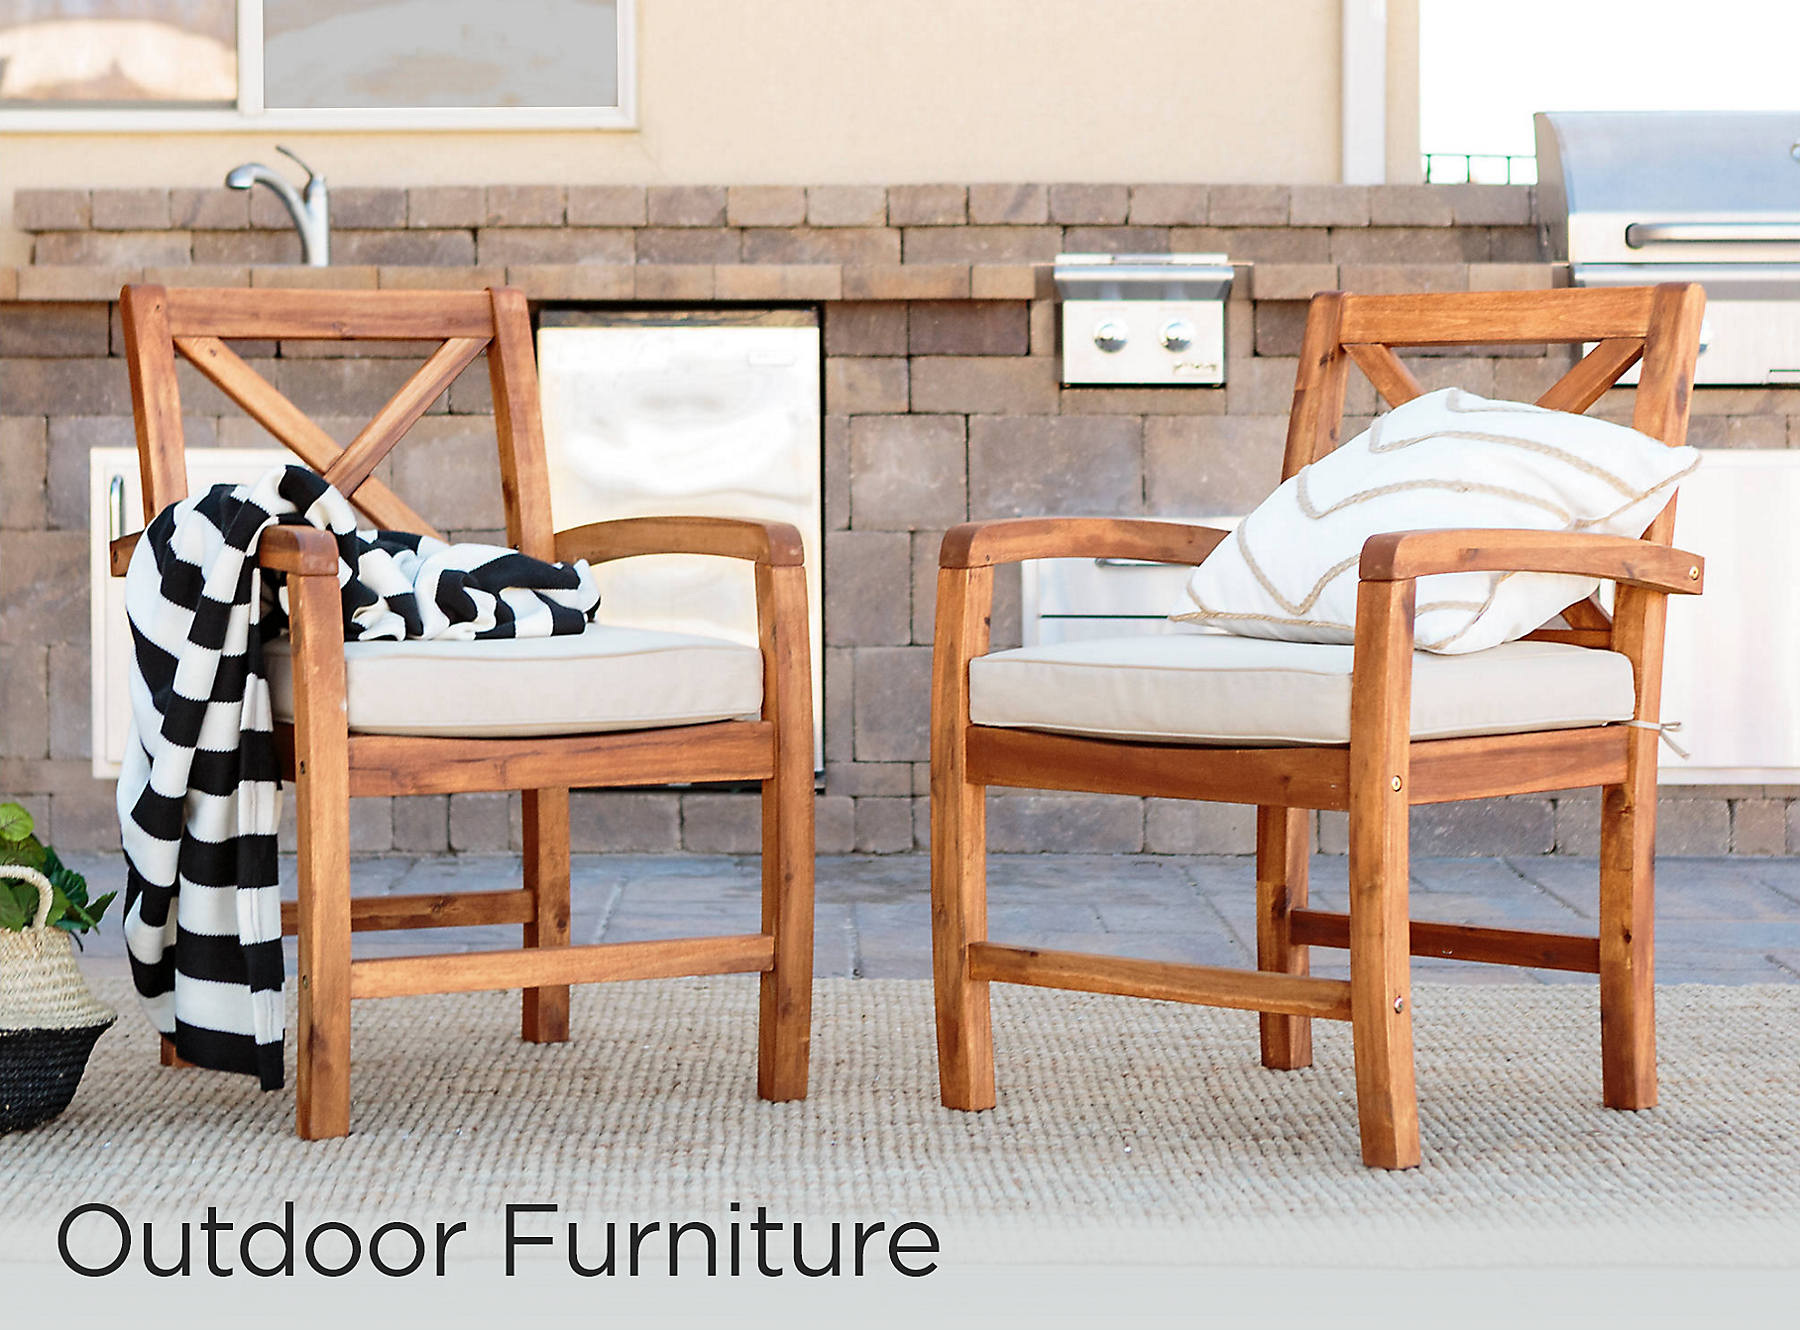 Outdoor Furniture 30% Off Excluded from coupon